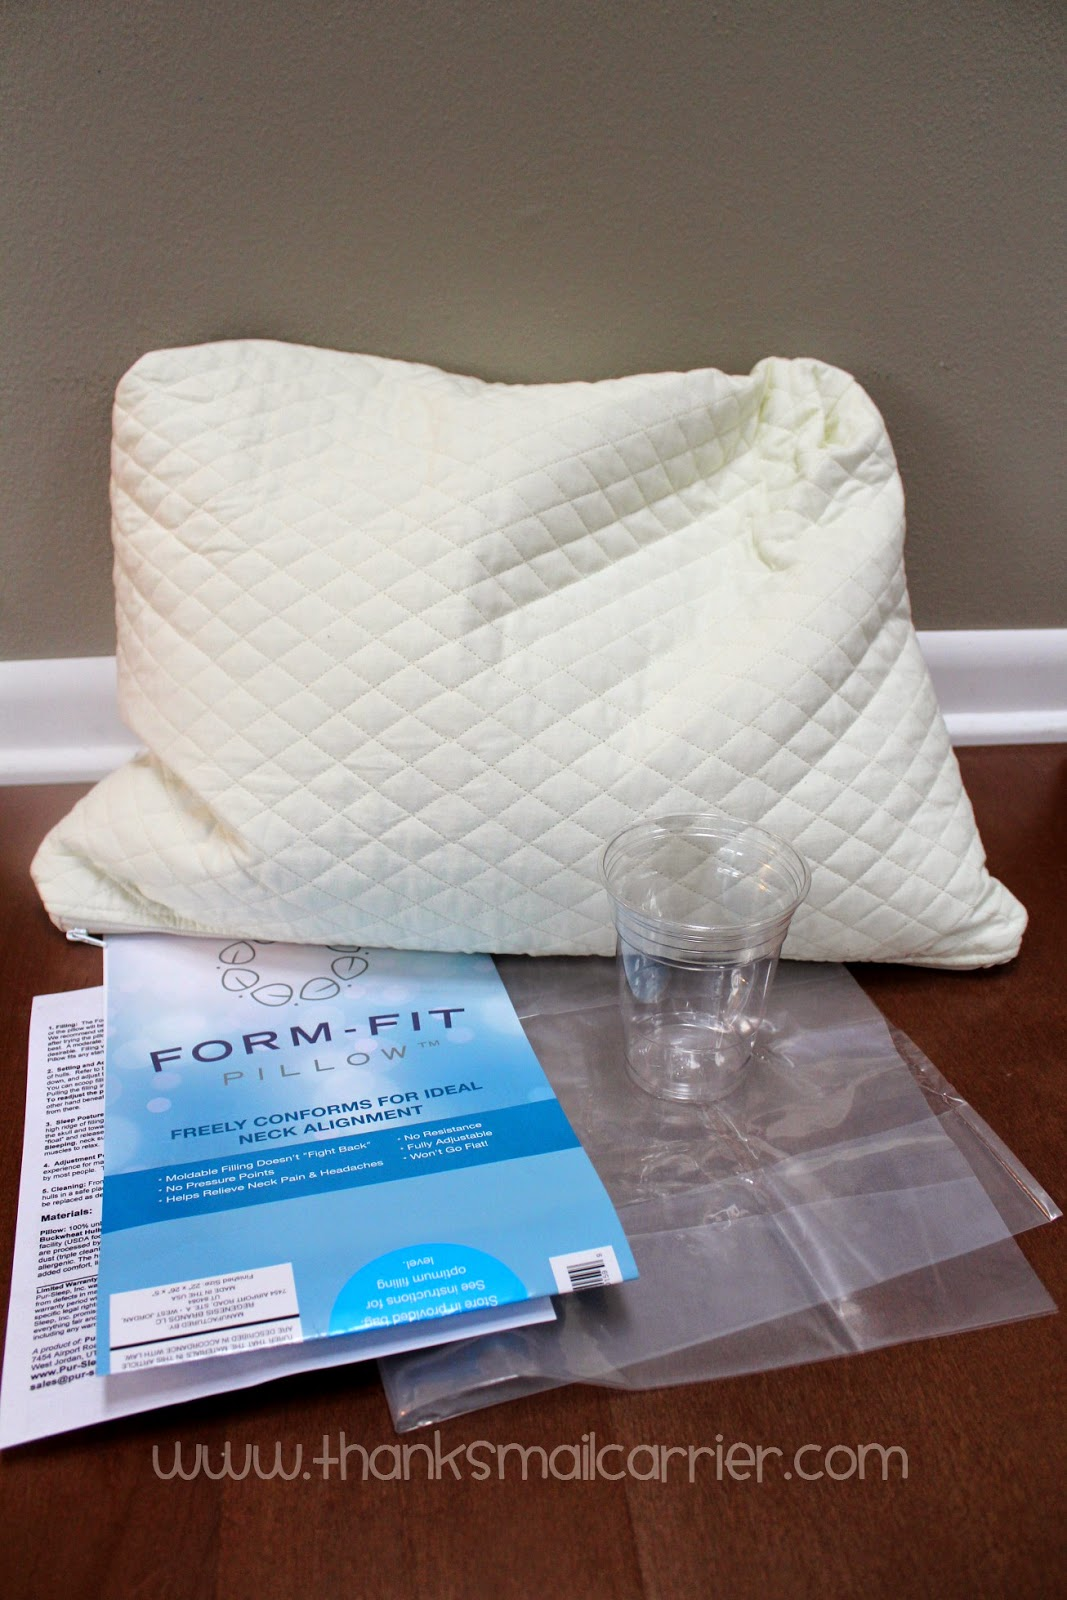 Form-Fit pillow review